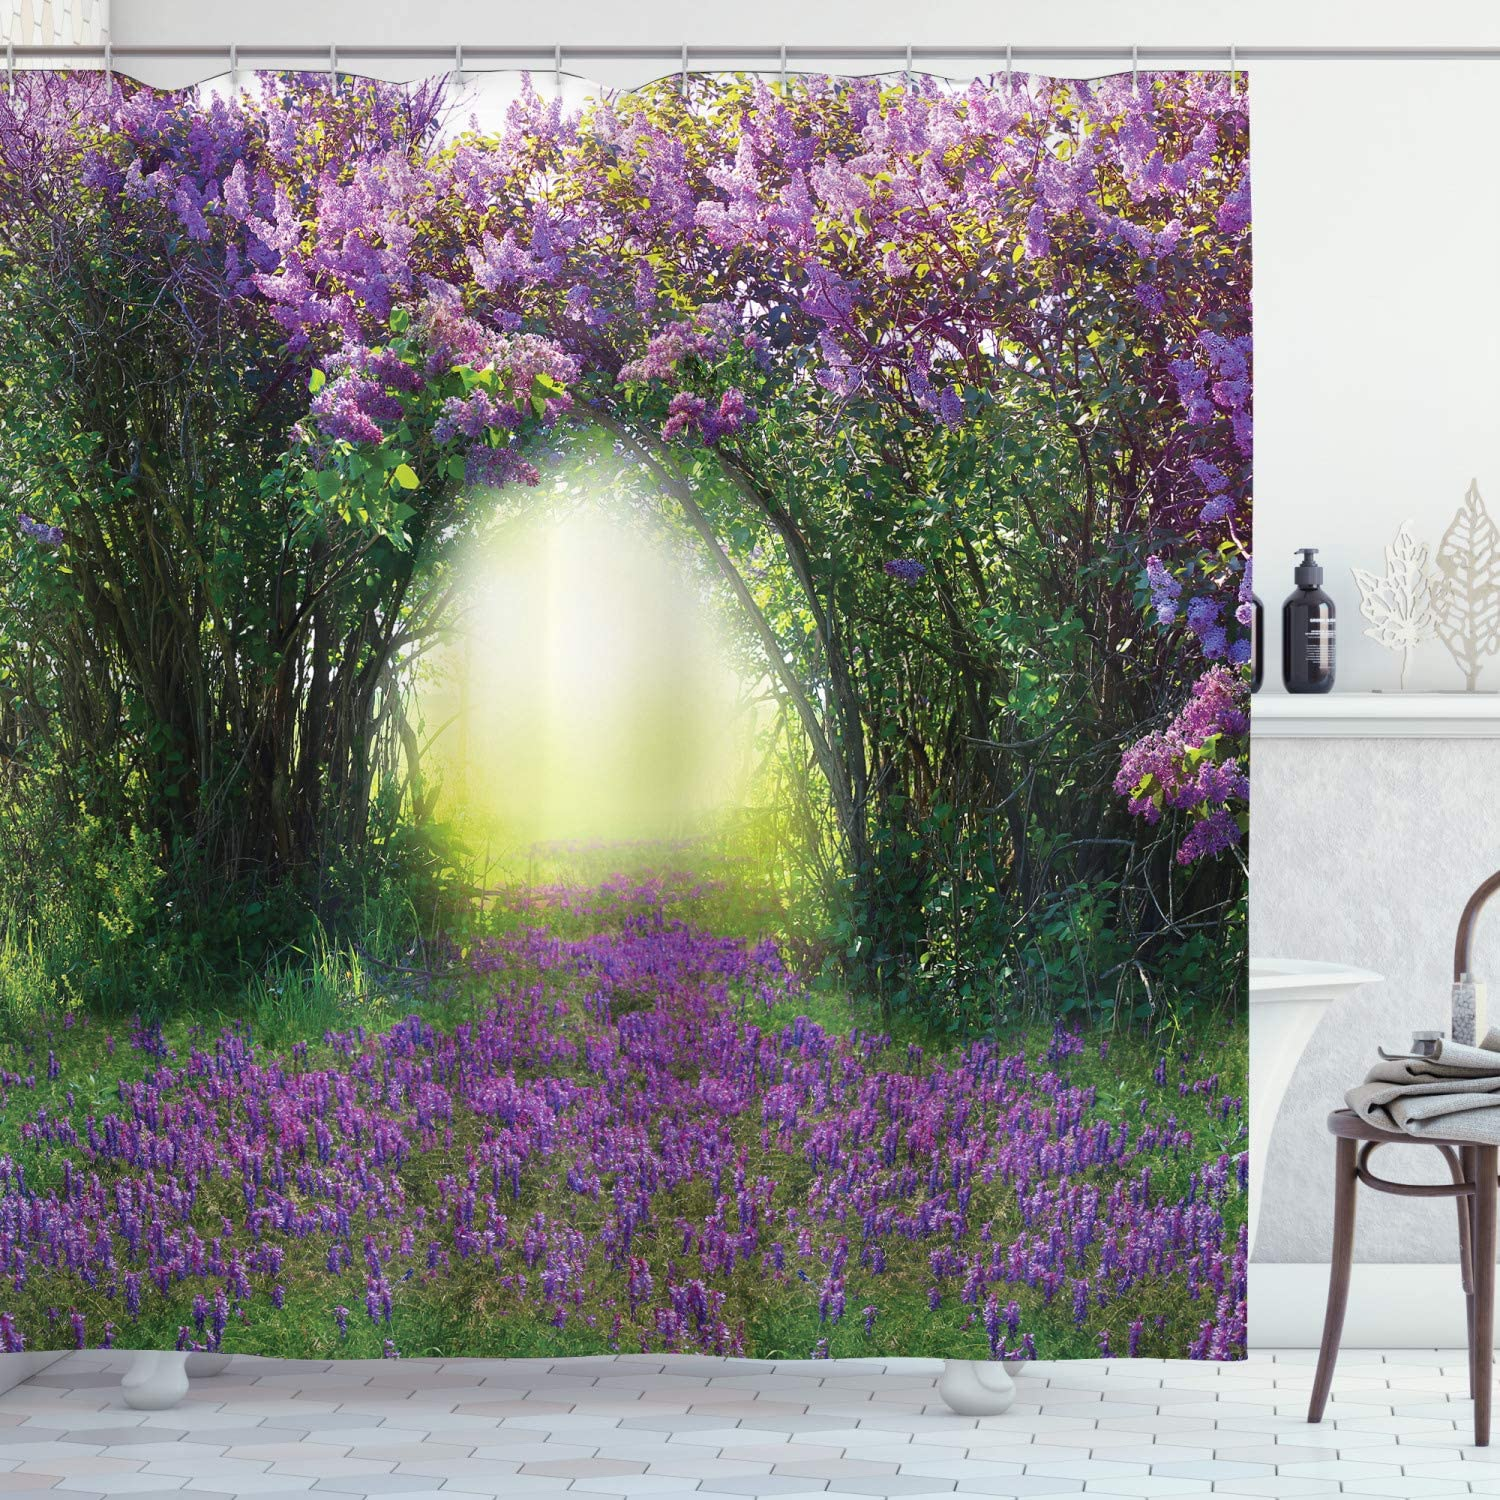 """Ambesonne Garden Shower Curtain, Magic Misty Forest View Spring Blossoms Bushes Greenery Grasses Sun Rays, Cloth Fabric Bathroom Decor Set with Hooks, 84"""" Long Extra, Lavender Green"""